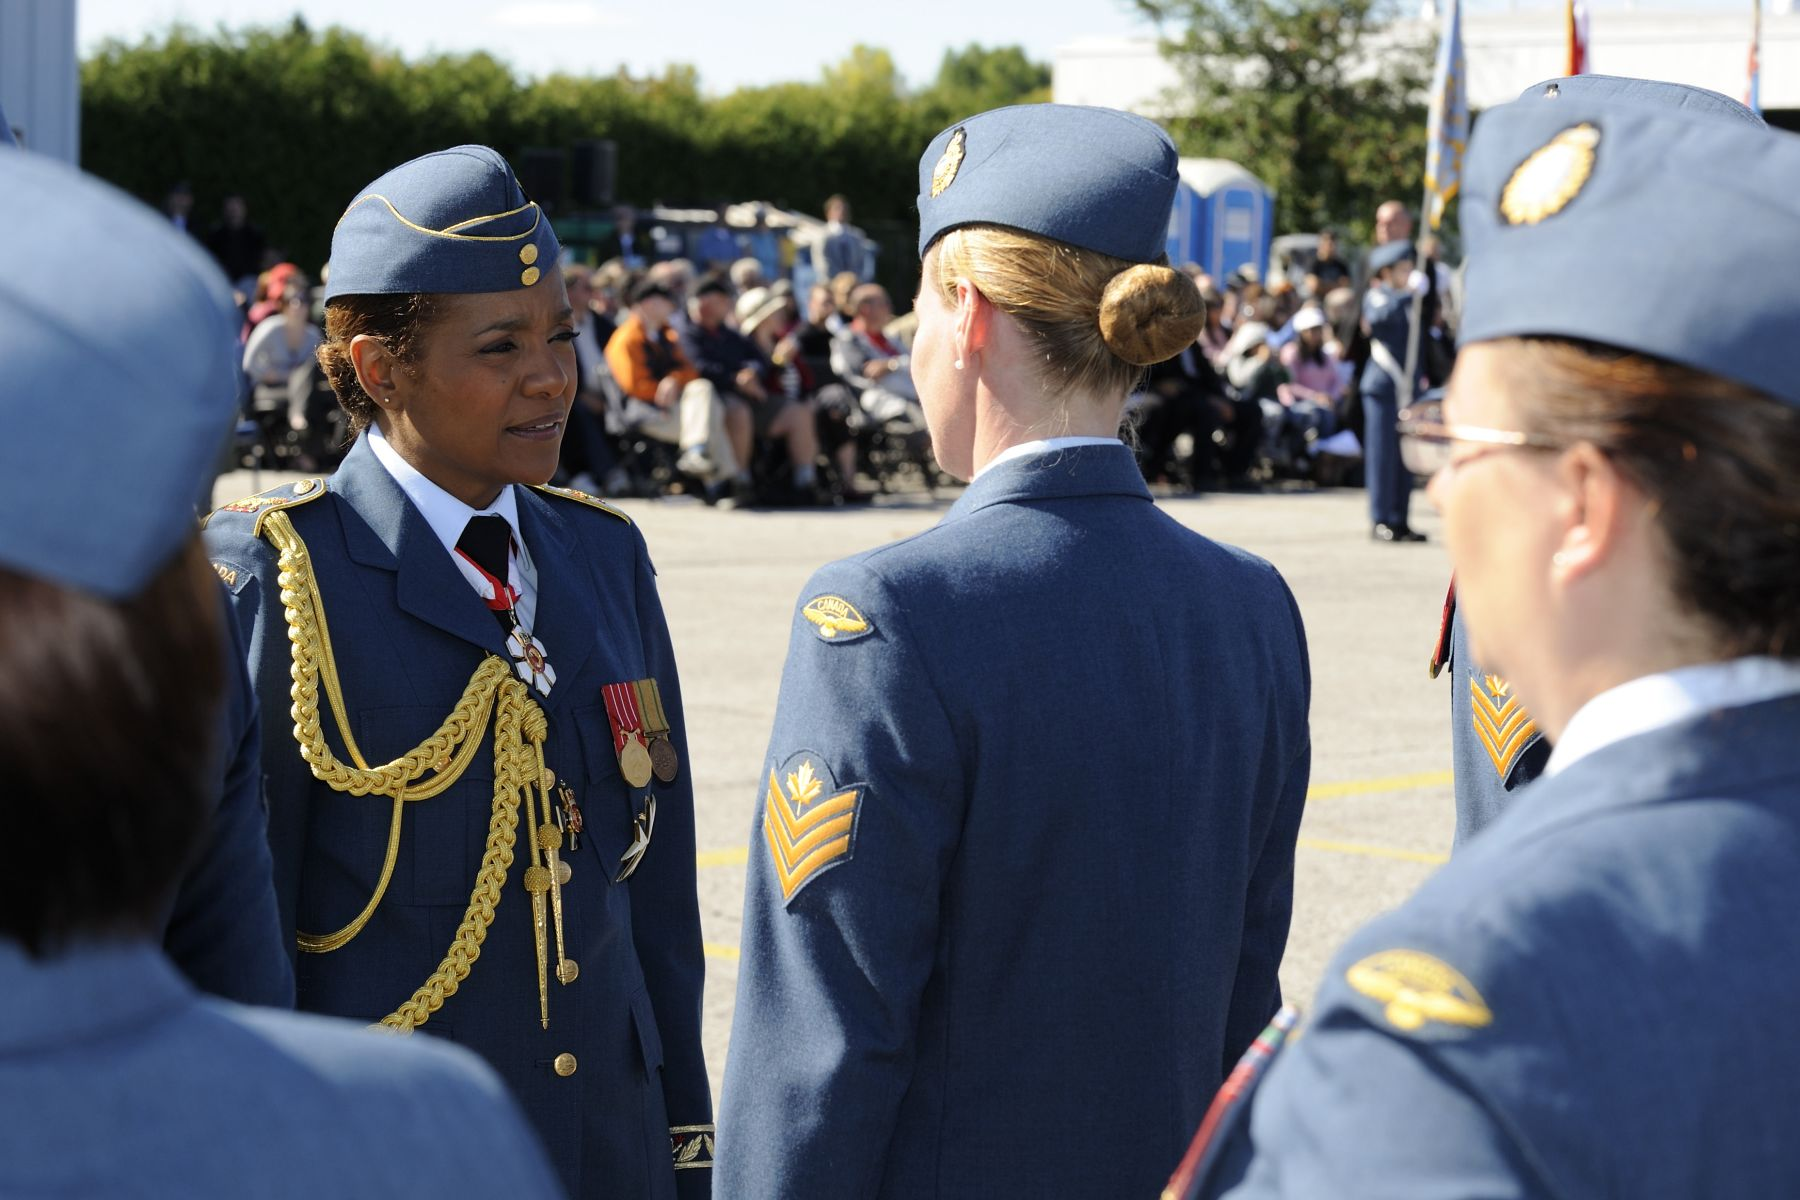 The Commander-in-Chief continued the inspection with Air Force active members, including women.